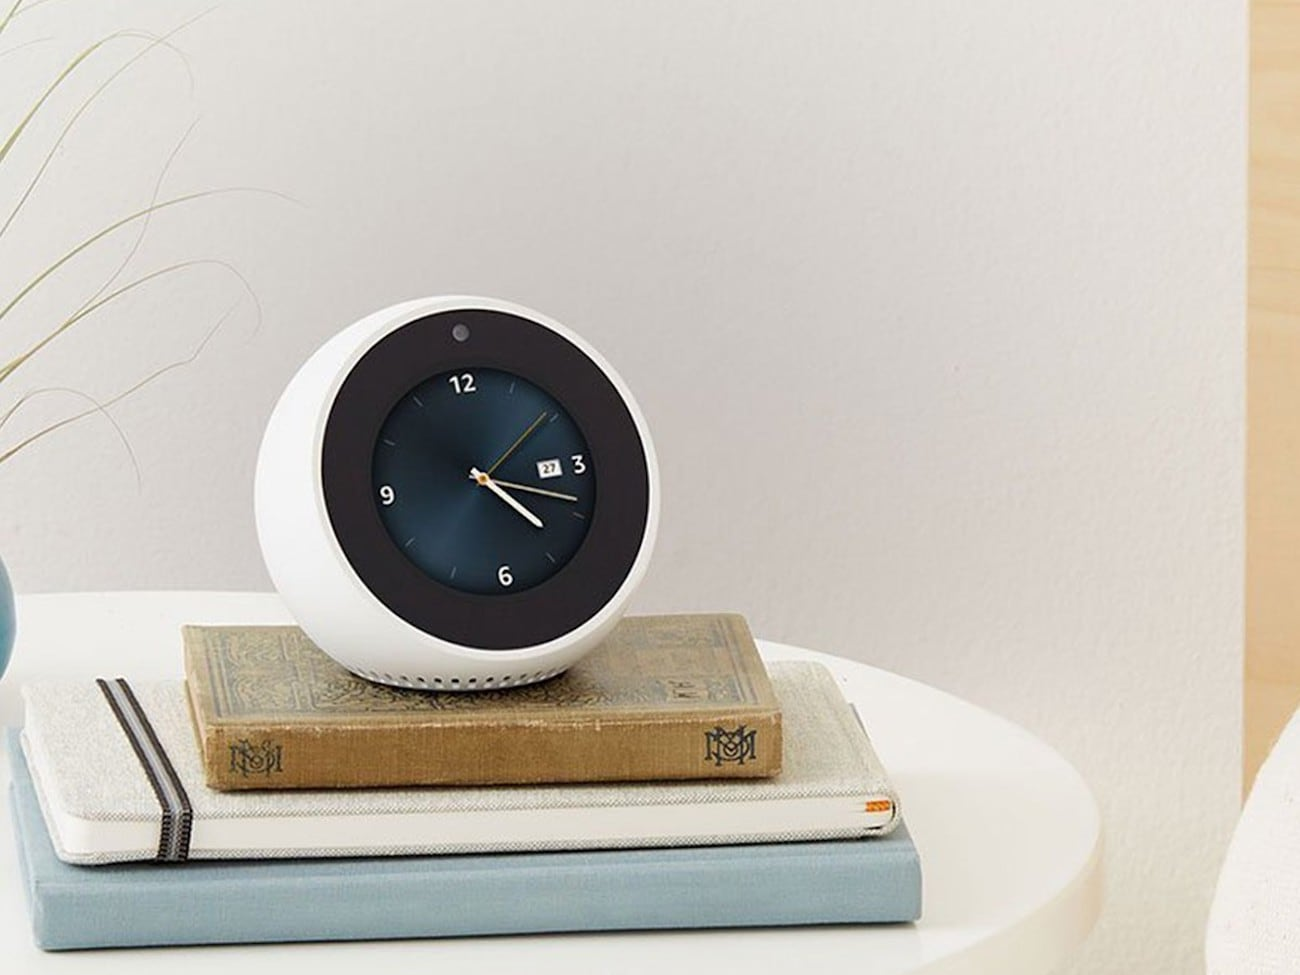 Amazon+Echo+Spot+Alexa+Alarm+Clock